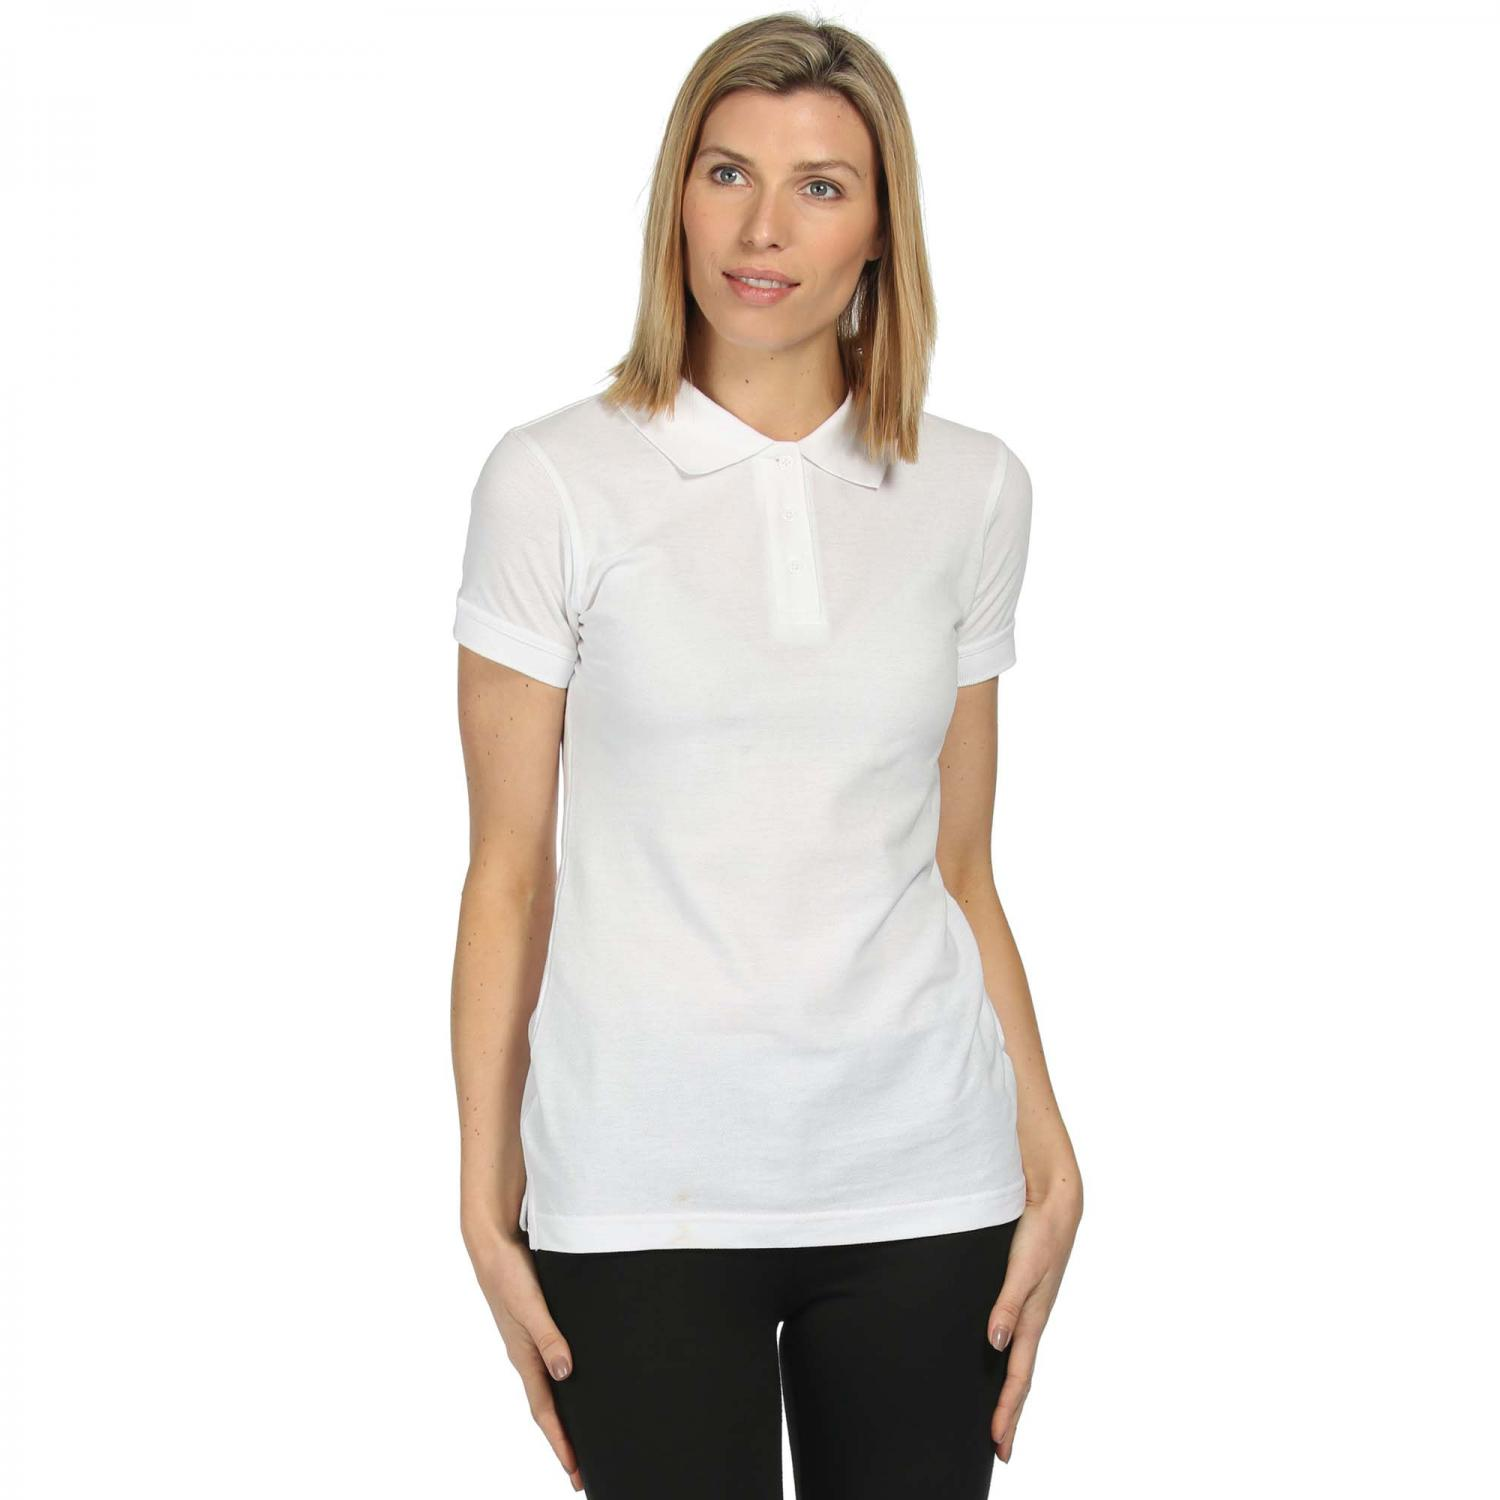 Womens Cotton Polo Shirt White